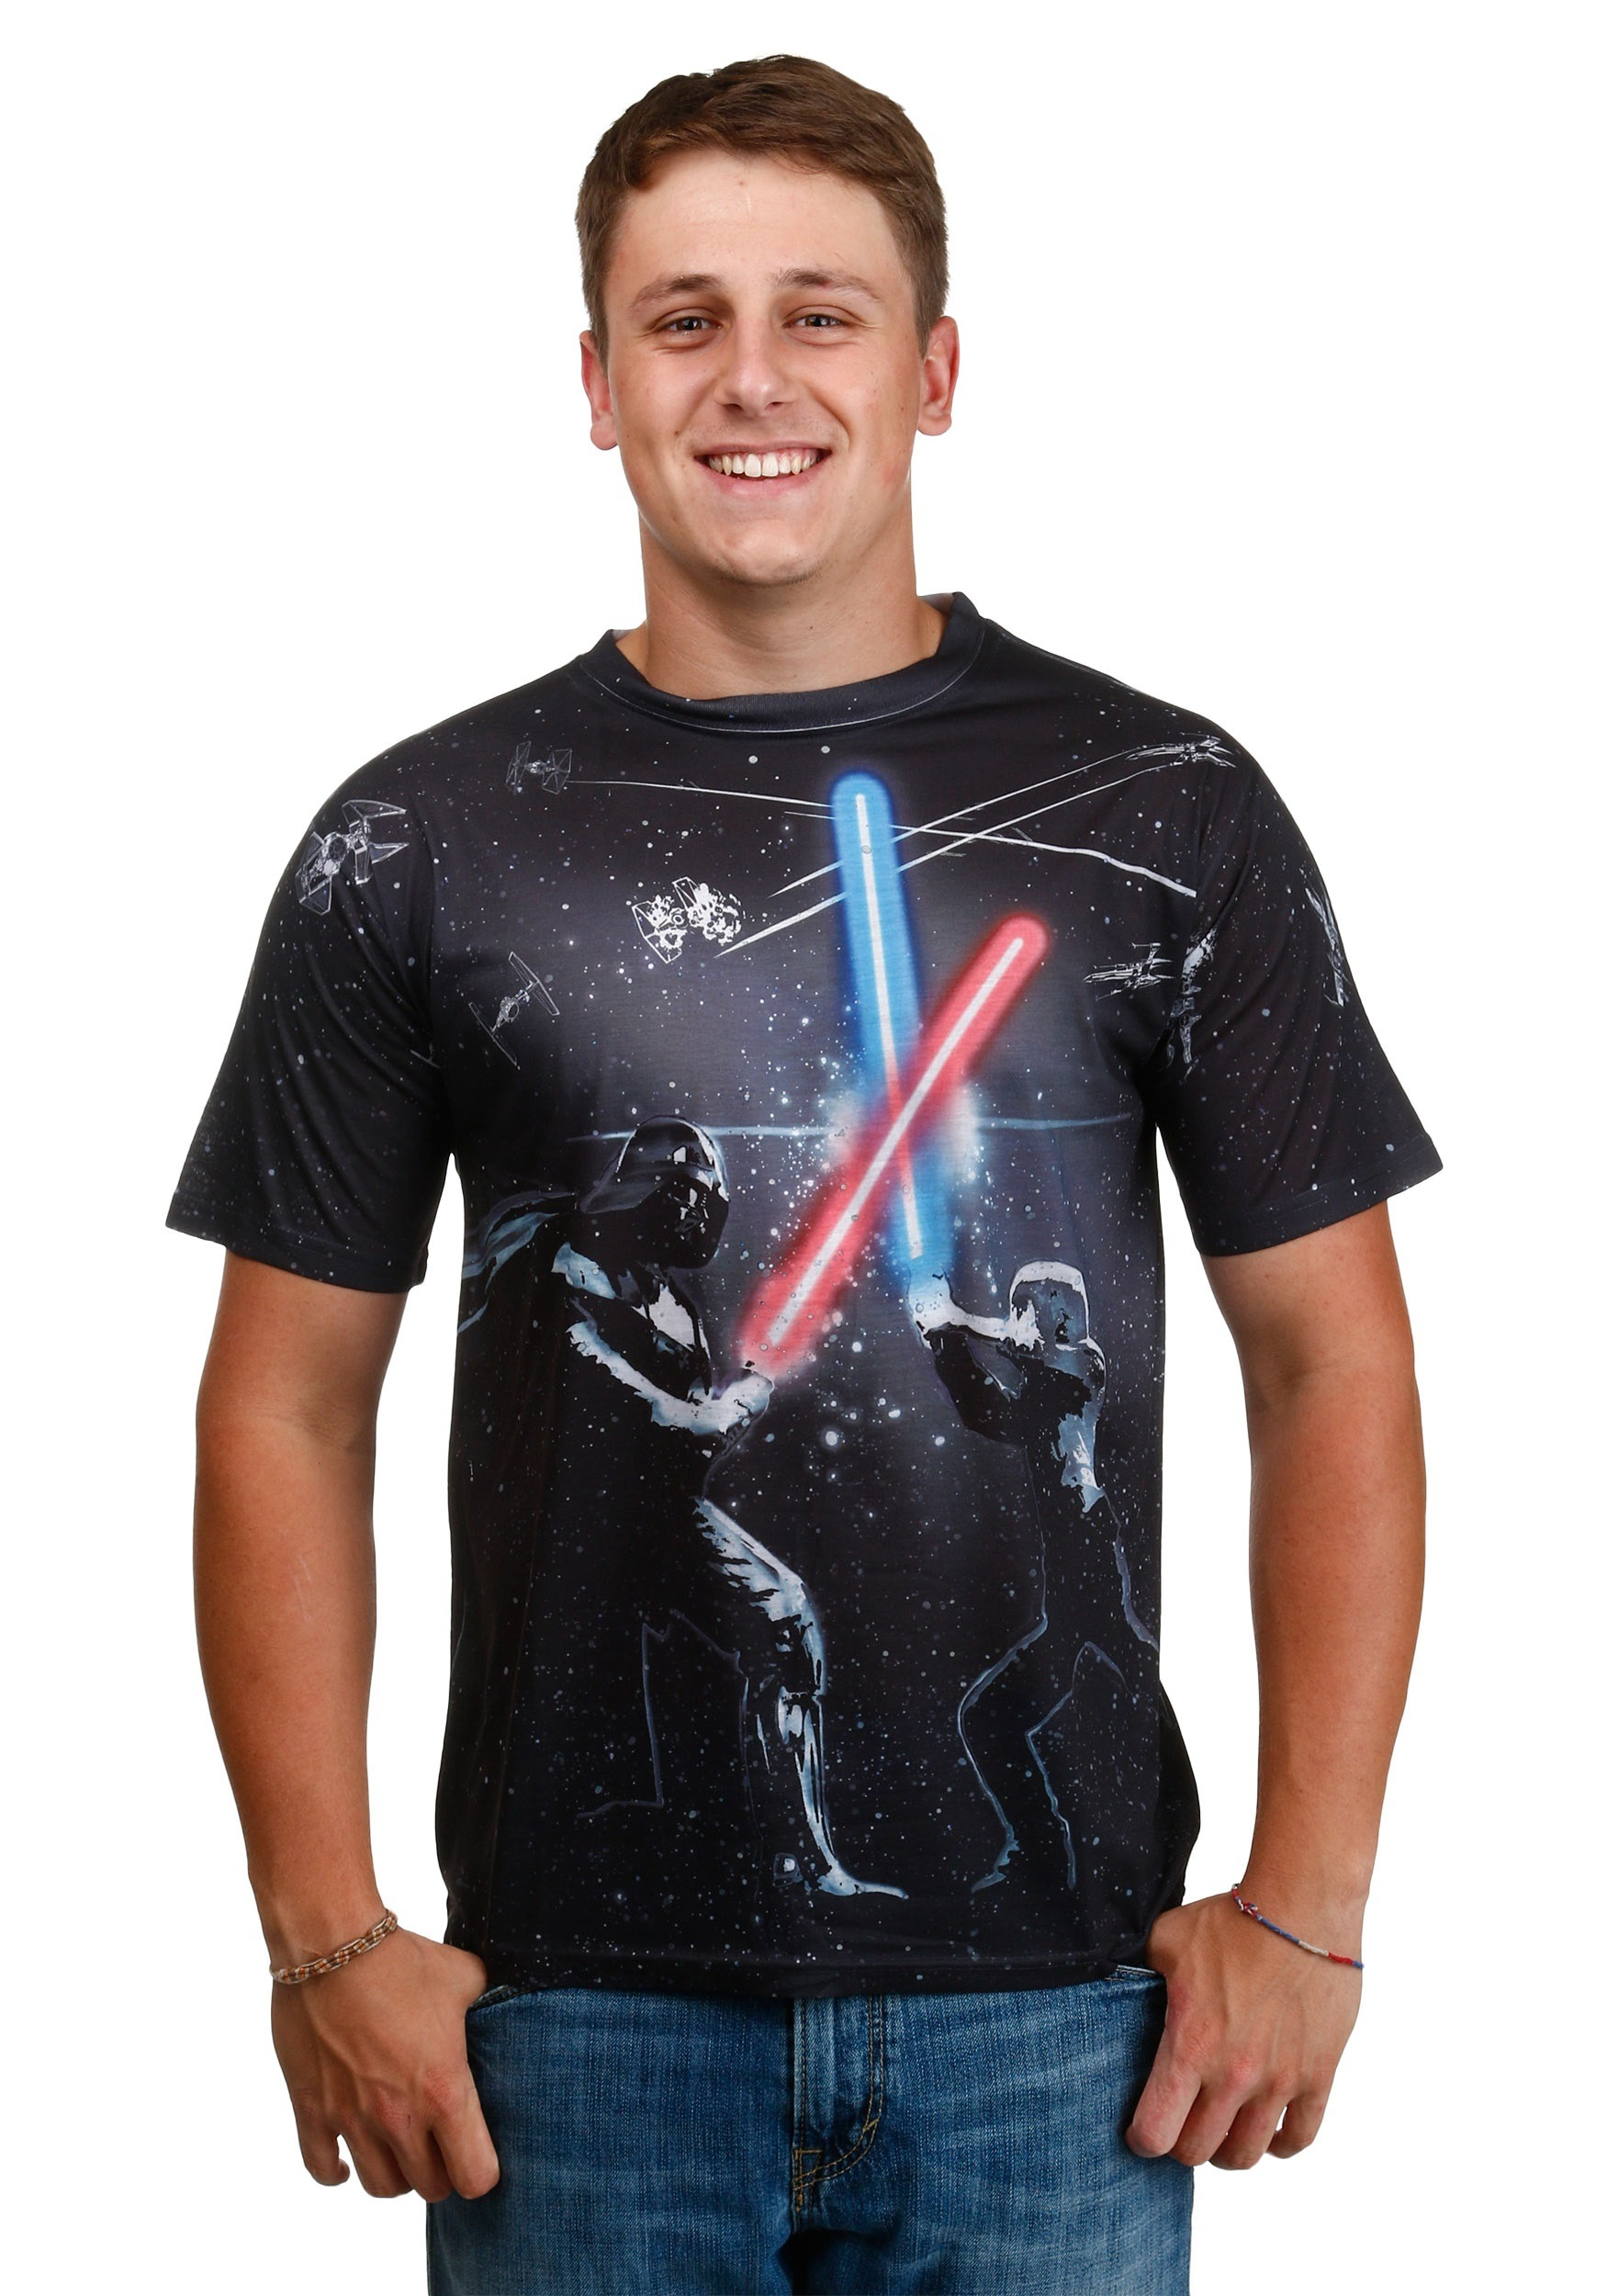 Star Wars All-Over Battle T-Shirt MASWRSRAMQMSCXX